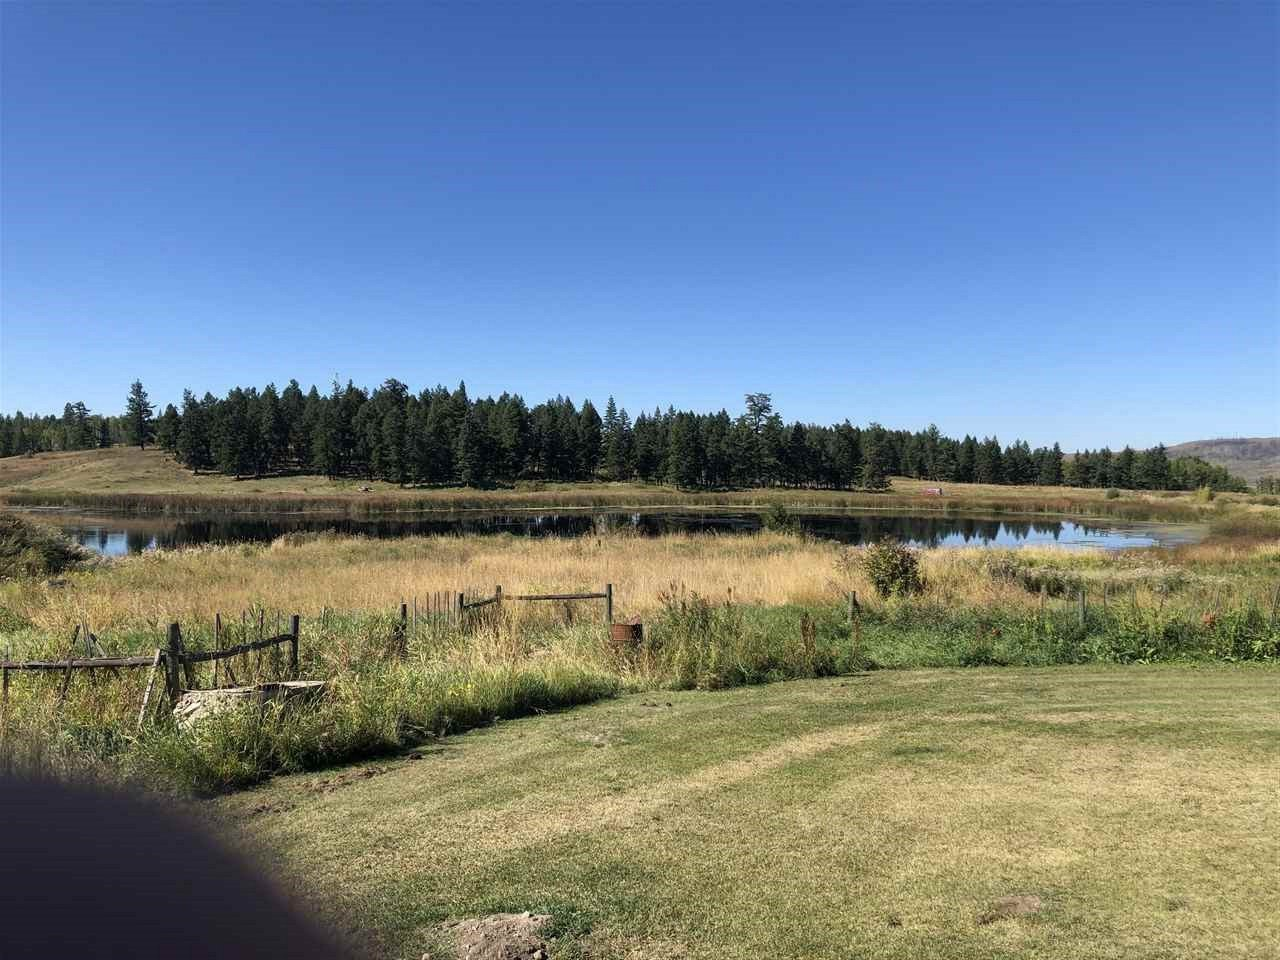 Photo 4: Photos: 3090 150 MILE FRONTAGE Road: 150 Mile House Land Commercial for sale (Williams Lake (Zone 27))  : MLS®# C8034187